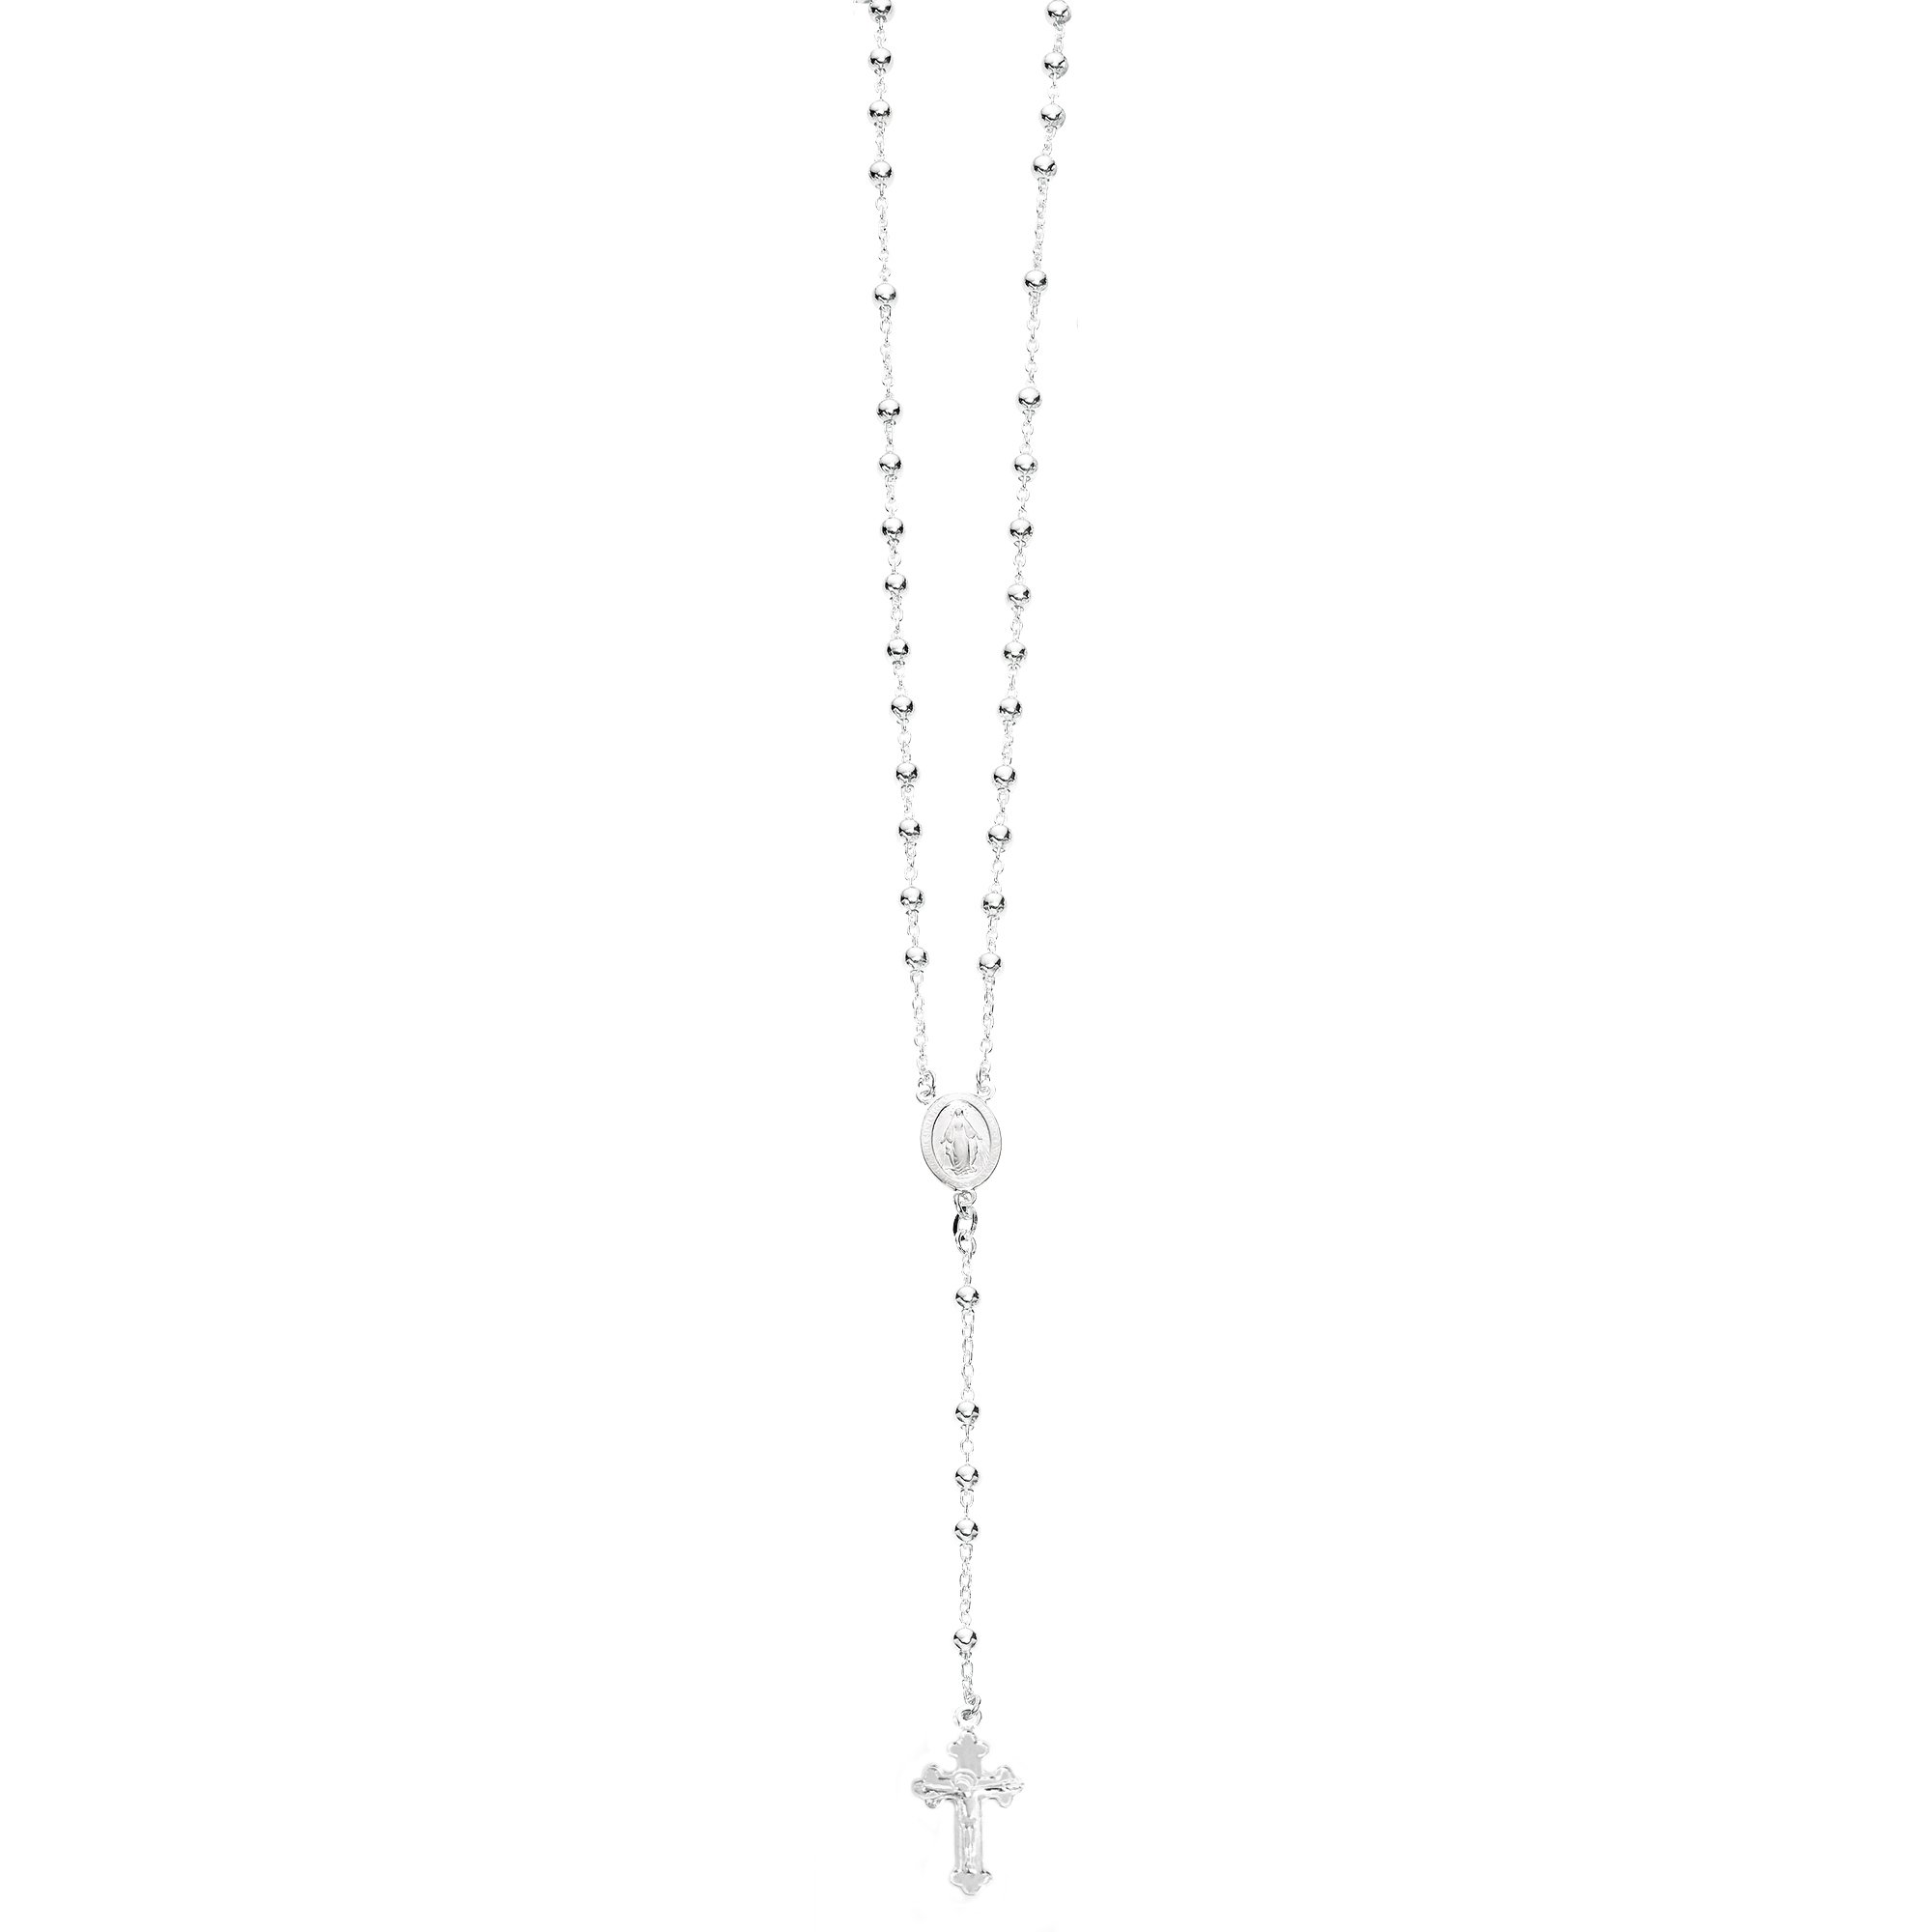 Ritastephens Sterling Silver or Gold-tone Rosary Bead Necklace Virgin Mary Cross Made in Italy (30 Inches) by Ritastephens